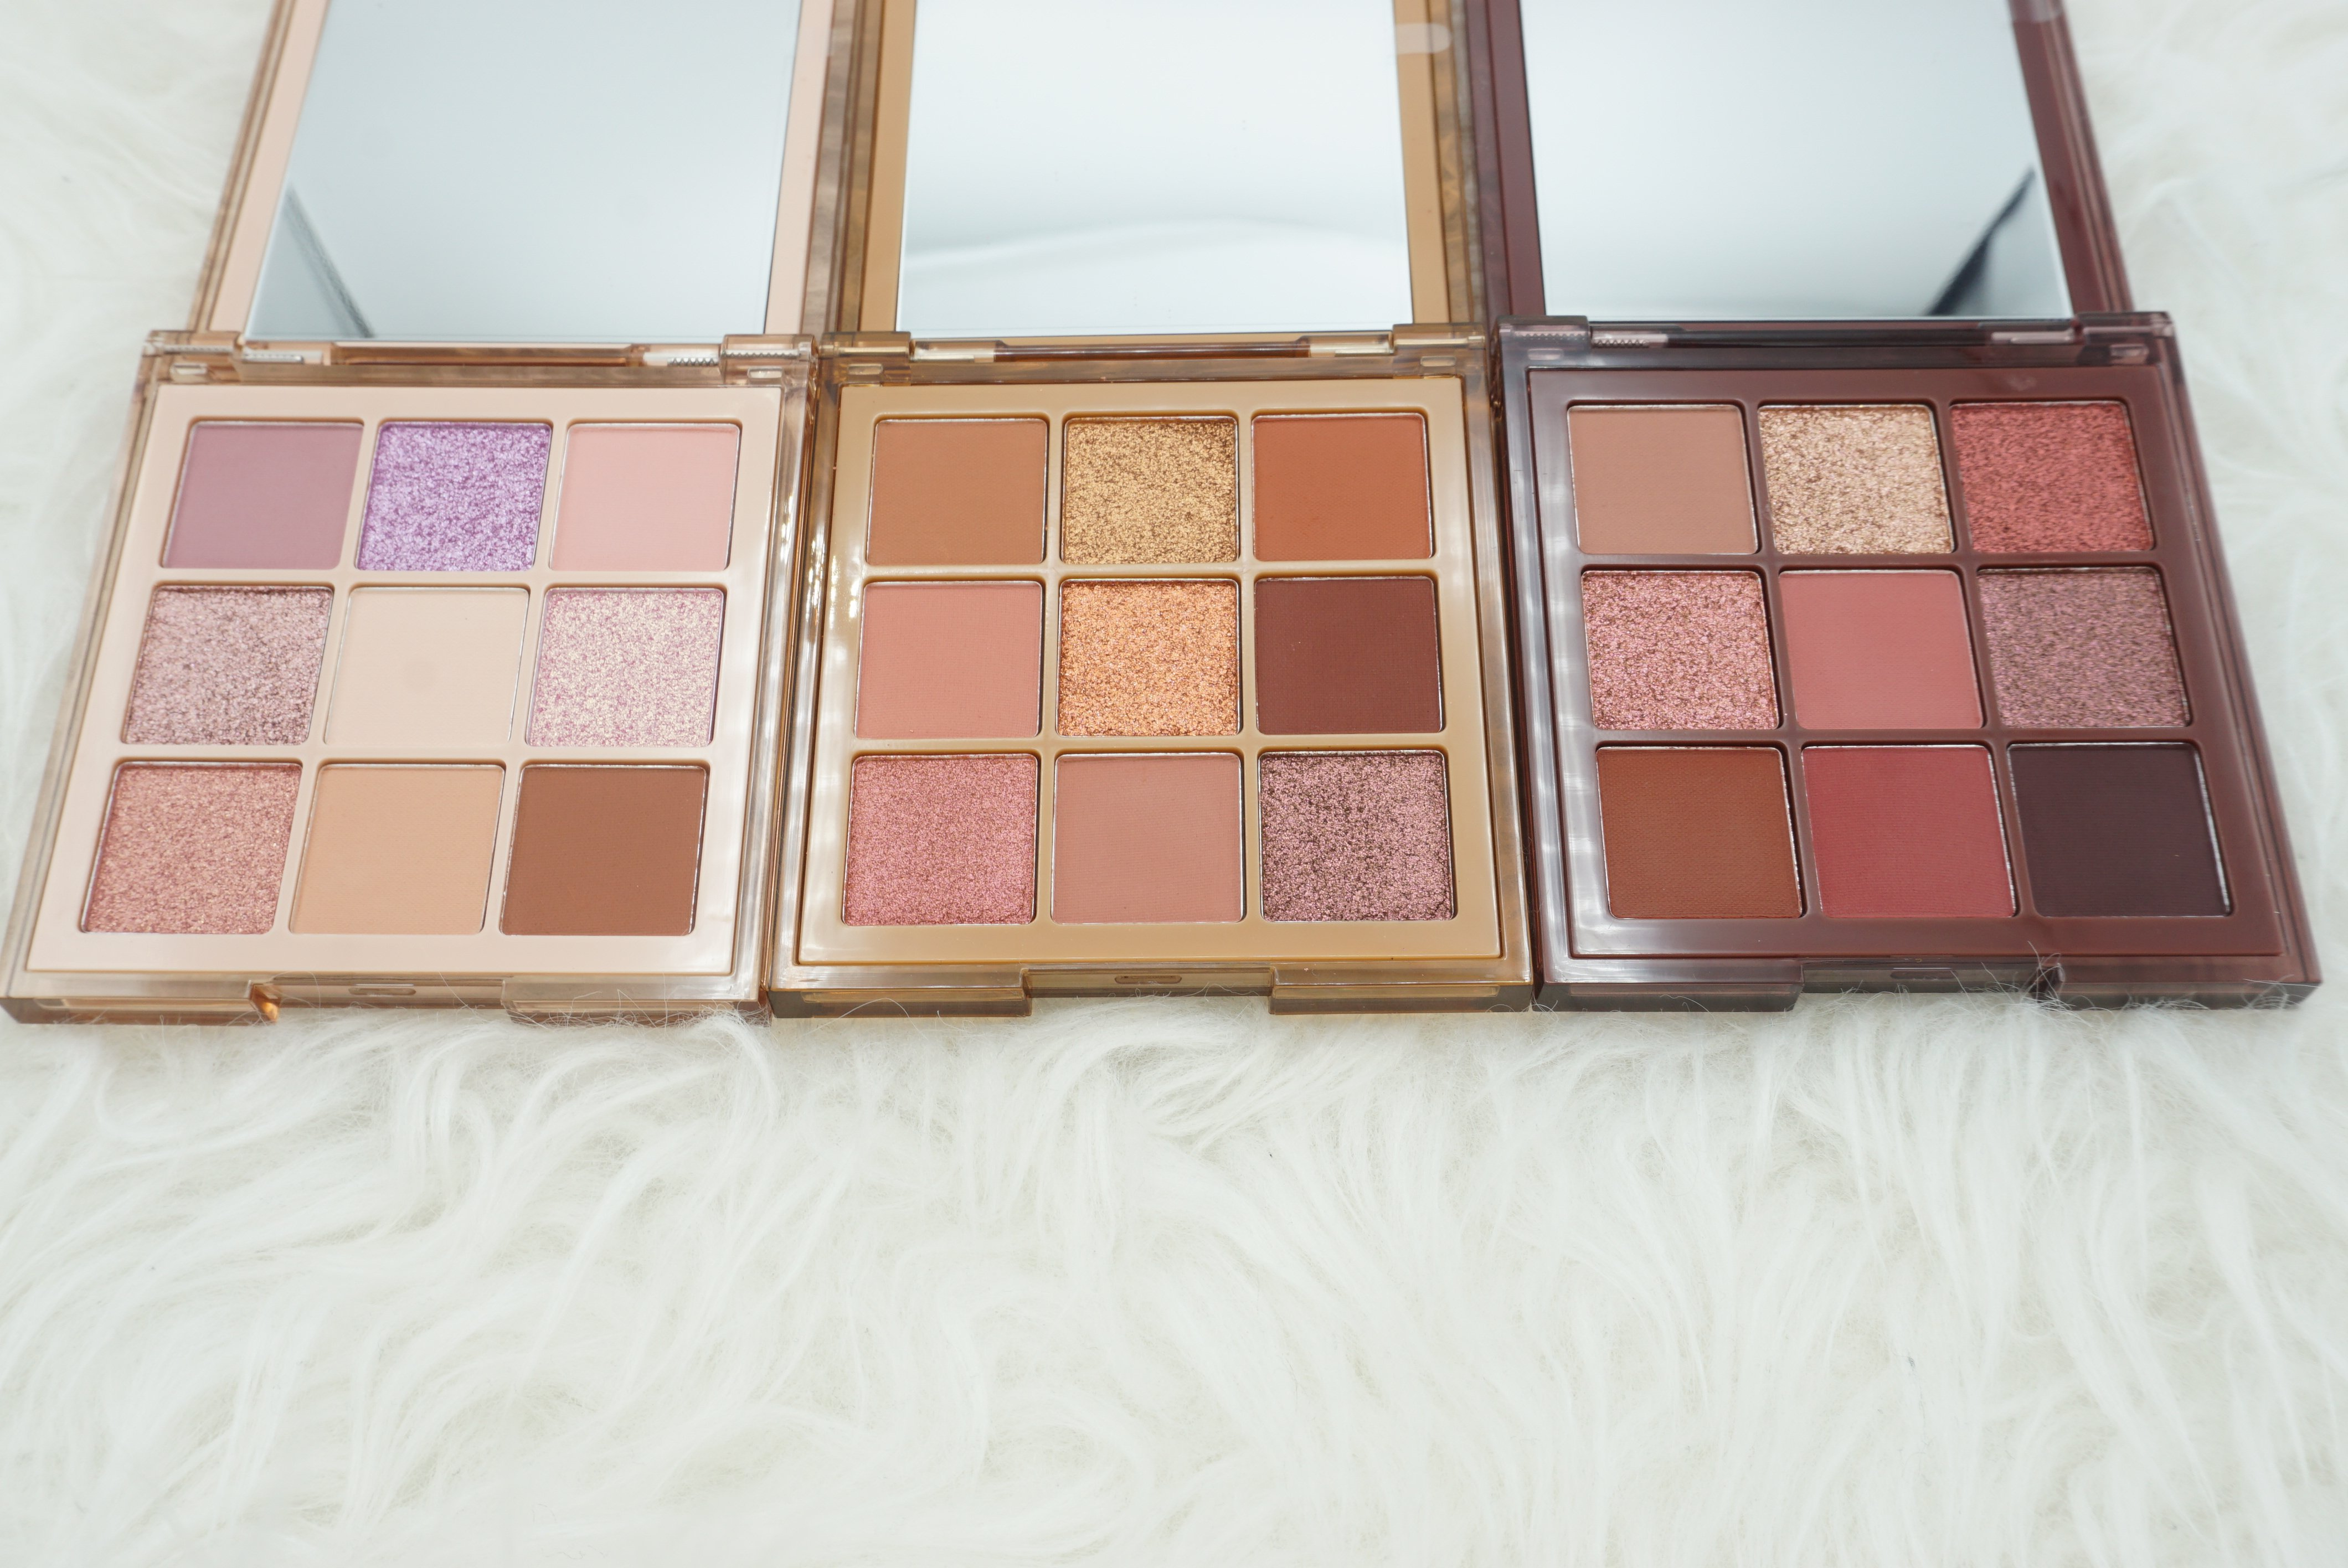 Huda Beauty Nude Obsessions Palettes | All 3 palettes Review & Swatches